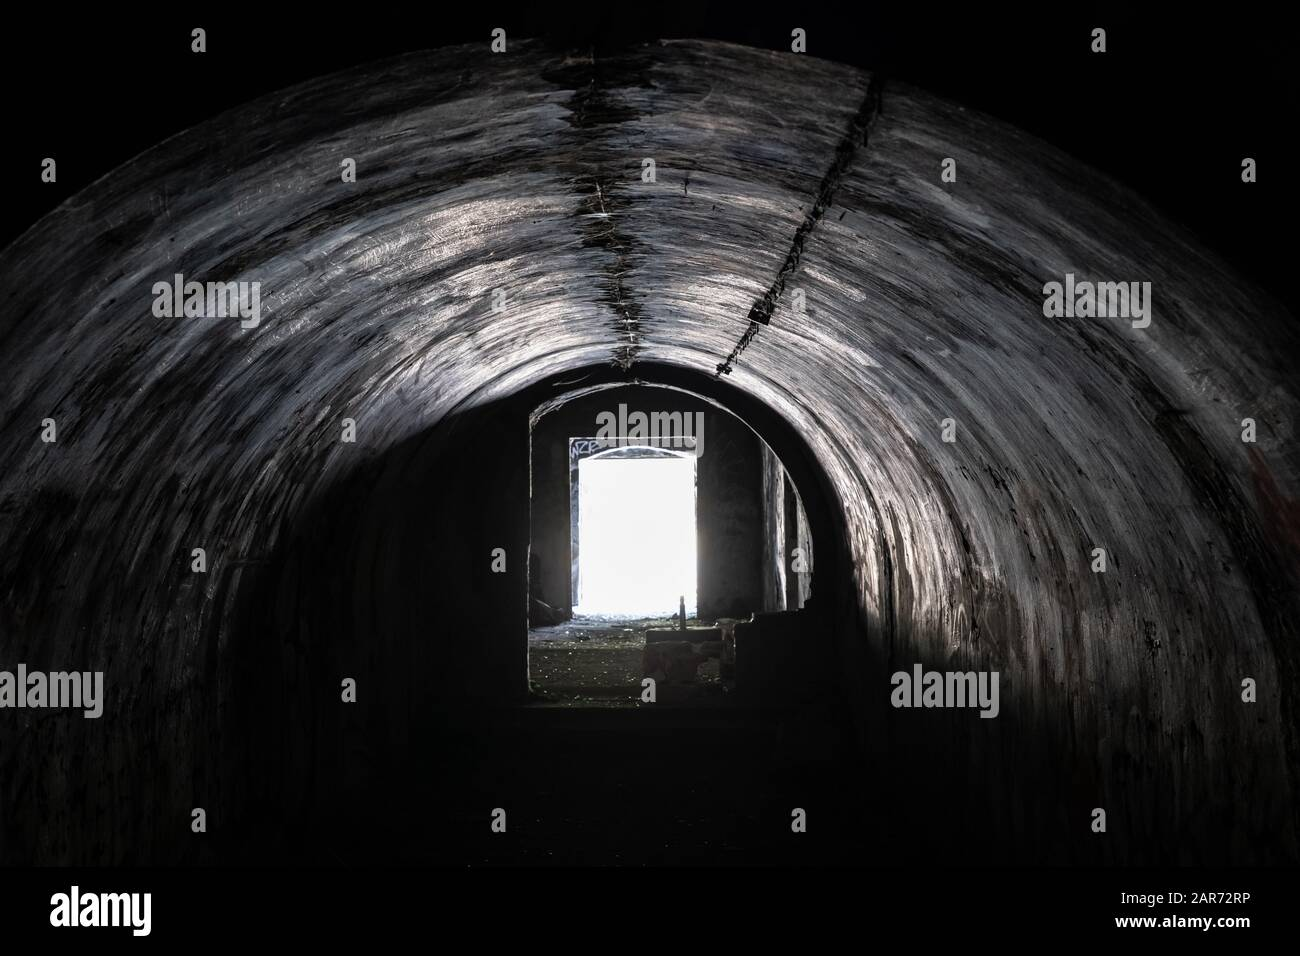 Spooky, creepy arched passage in an abandoned building, old military fort interior concrete structure, urban exploration Stock Photo